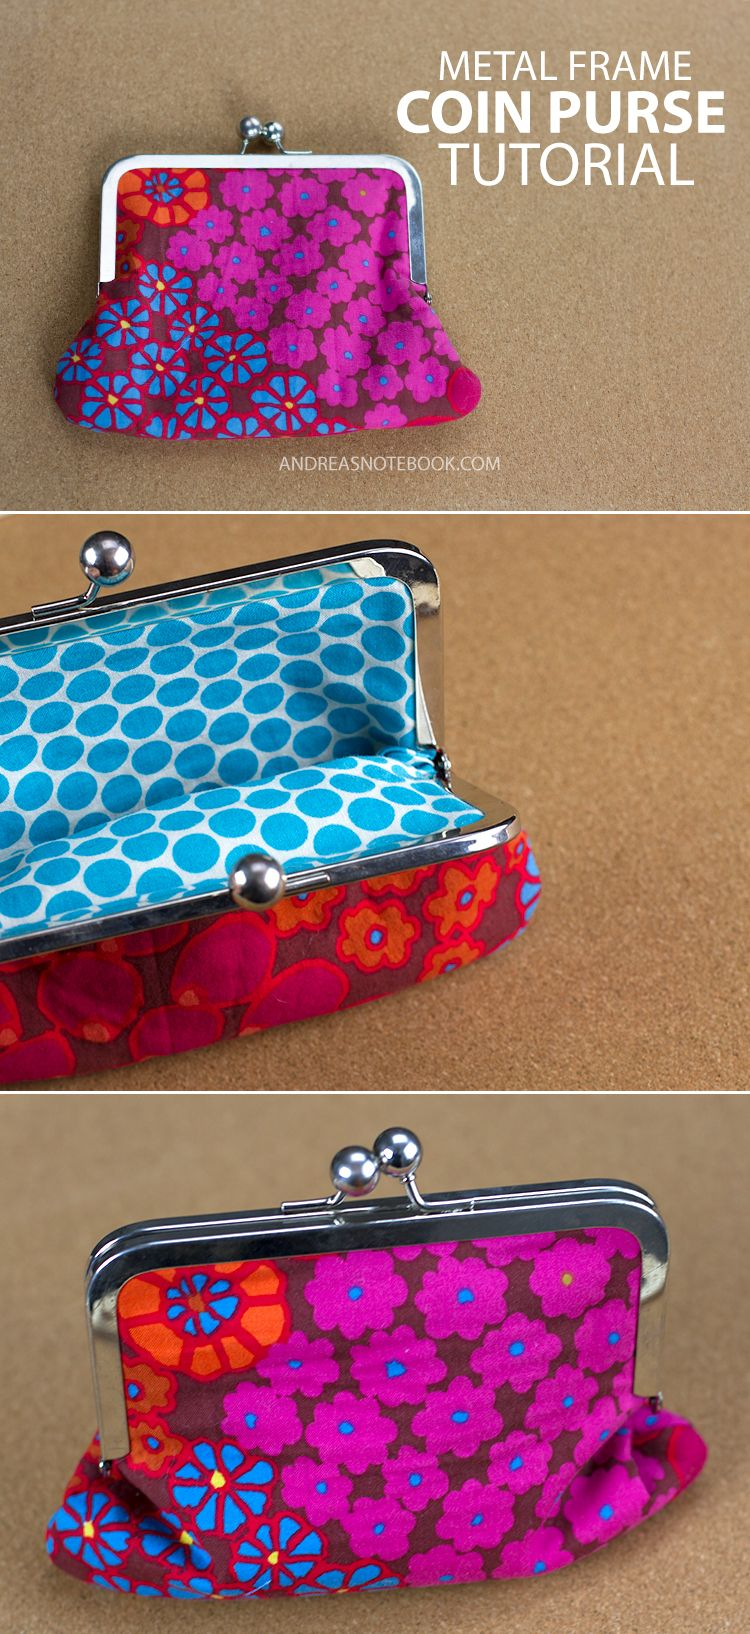 30 Things To Sew In 30 Minutes Hobbycraft Blog Coin Purse Tutorial Purse Tutorial Coin Purse Pattern